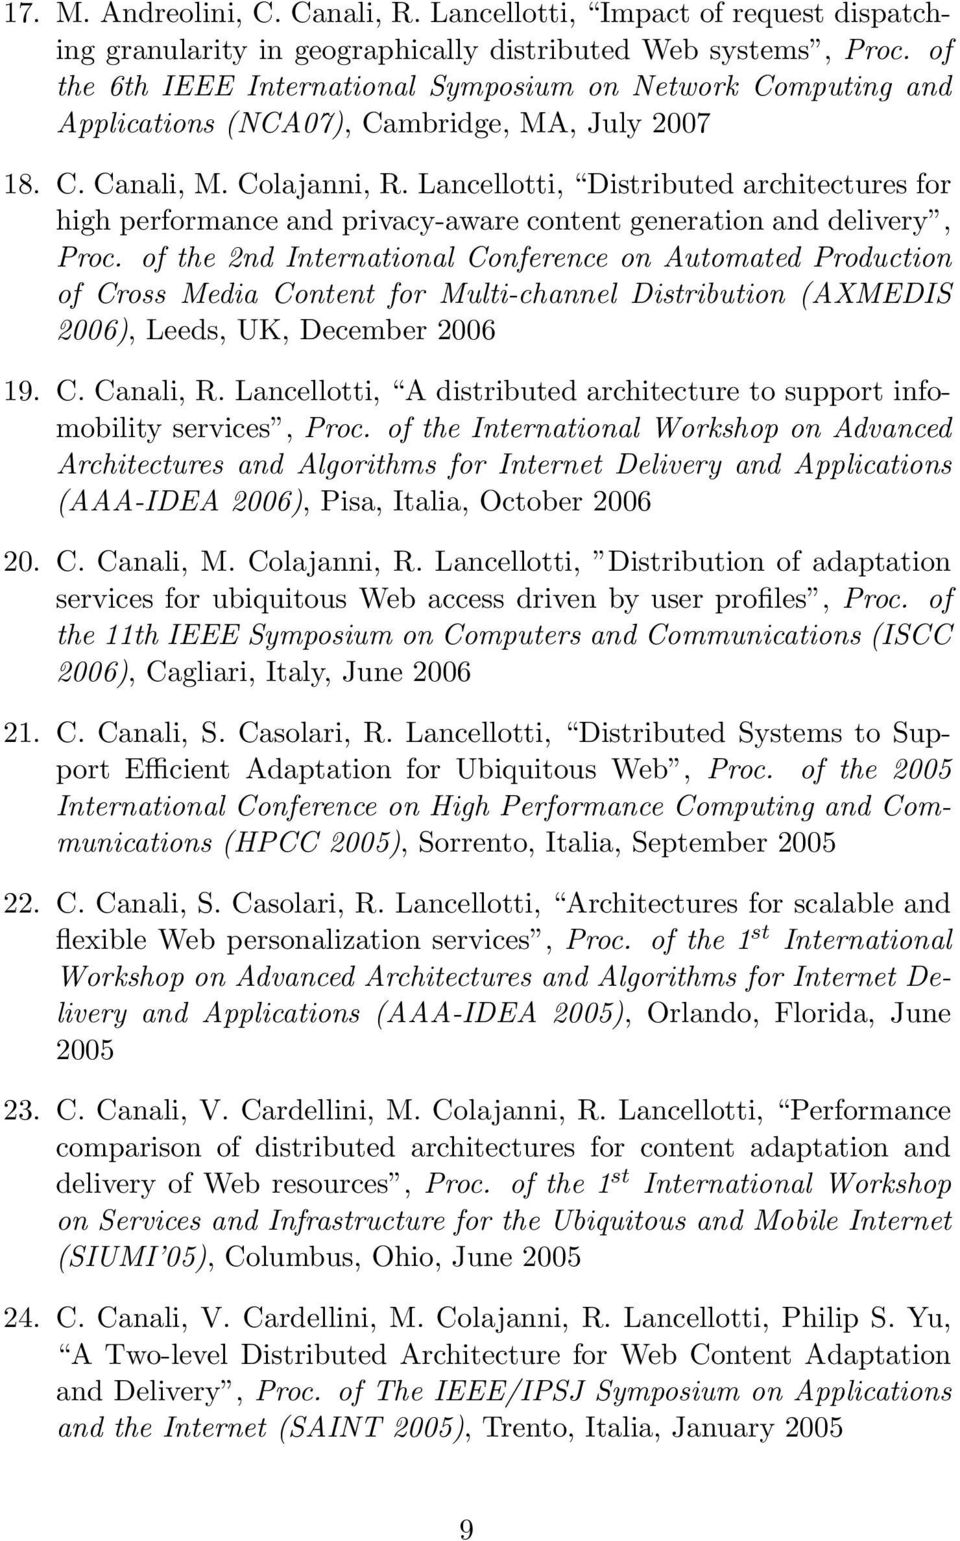 Lancellotti, Distributed architectures for high performance and privacy-aware content generation and delivery, Proc.